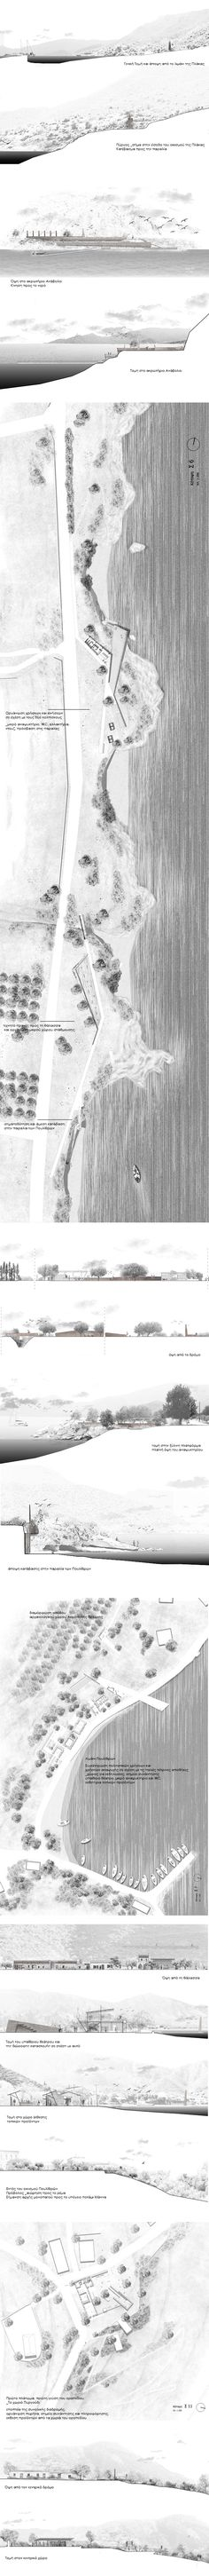 Landscape Architecture Drawing, Landscape And Urbanism, Architecture Panel, Architecture Graphics, Landscape Plans, Architecture Design, Architecture Diagrams, Architectural Section, Architectural Presentation